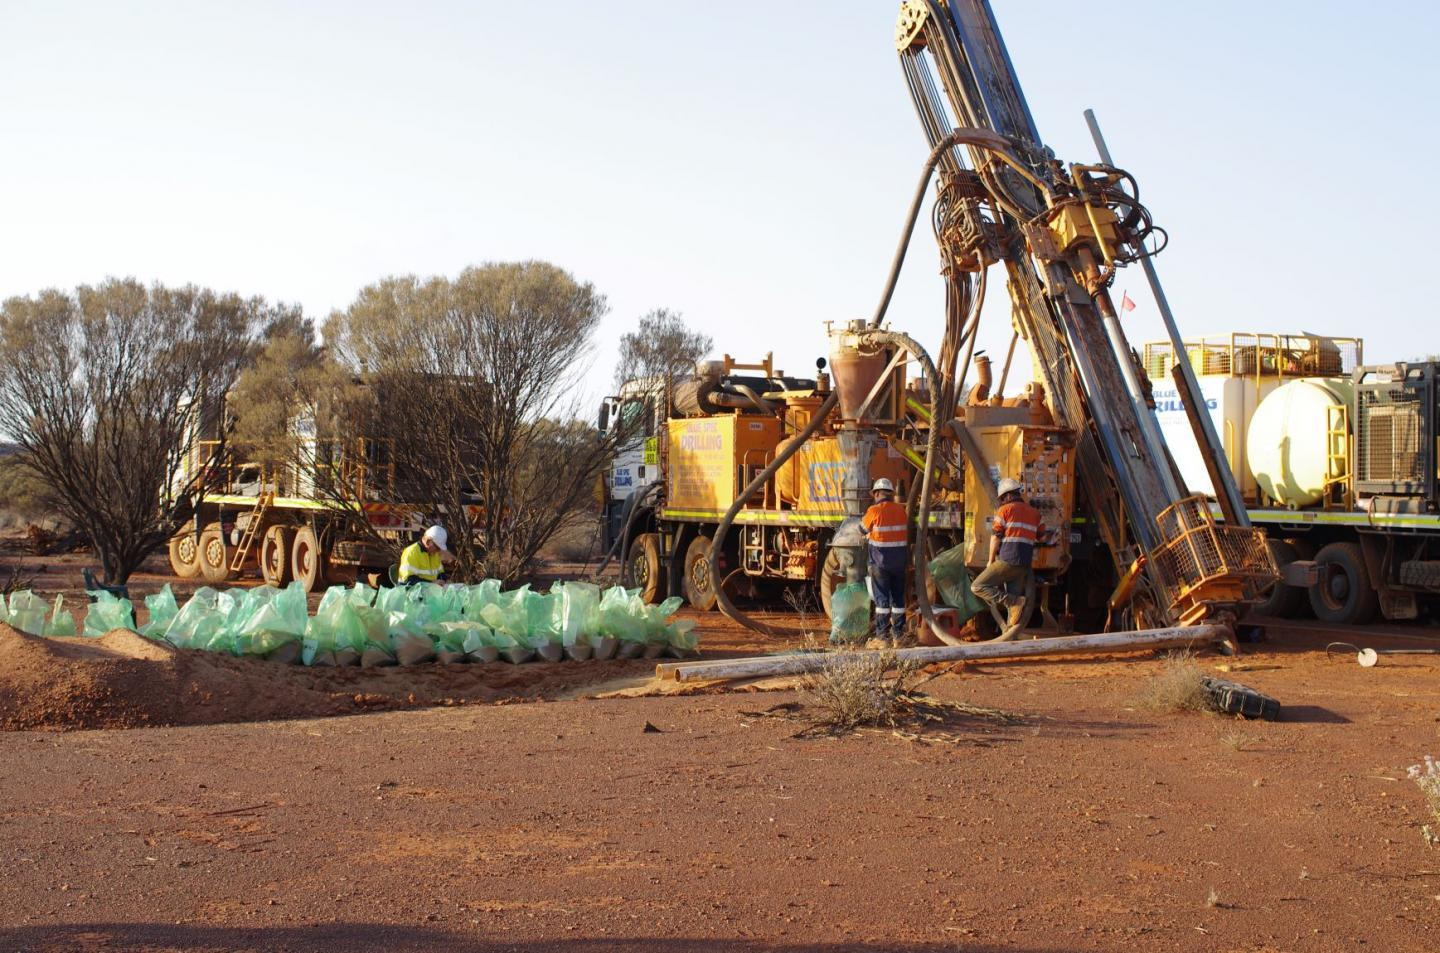 Podium's new Parks Reef PGMs resource looms large